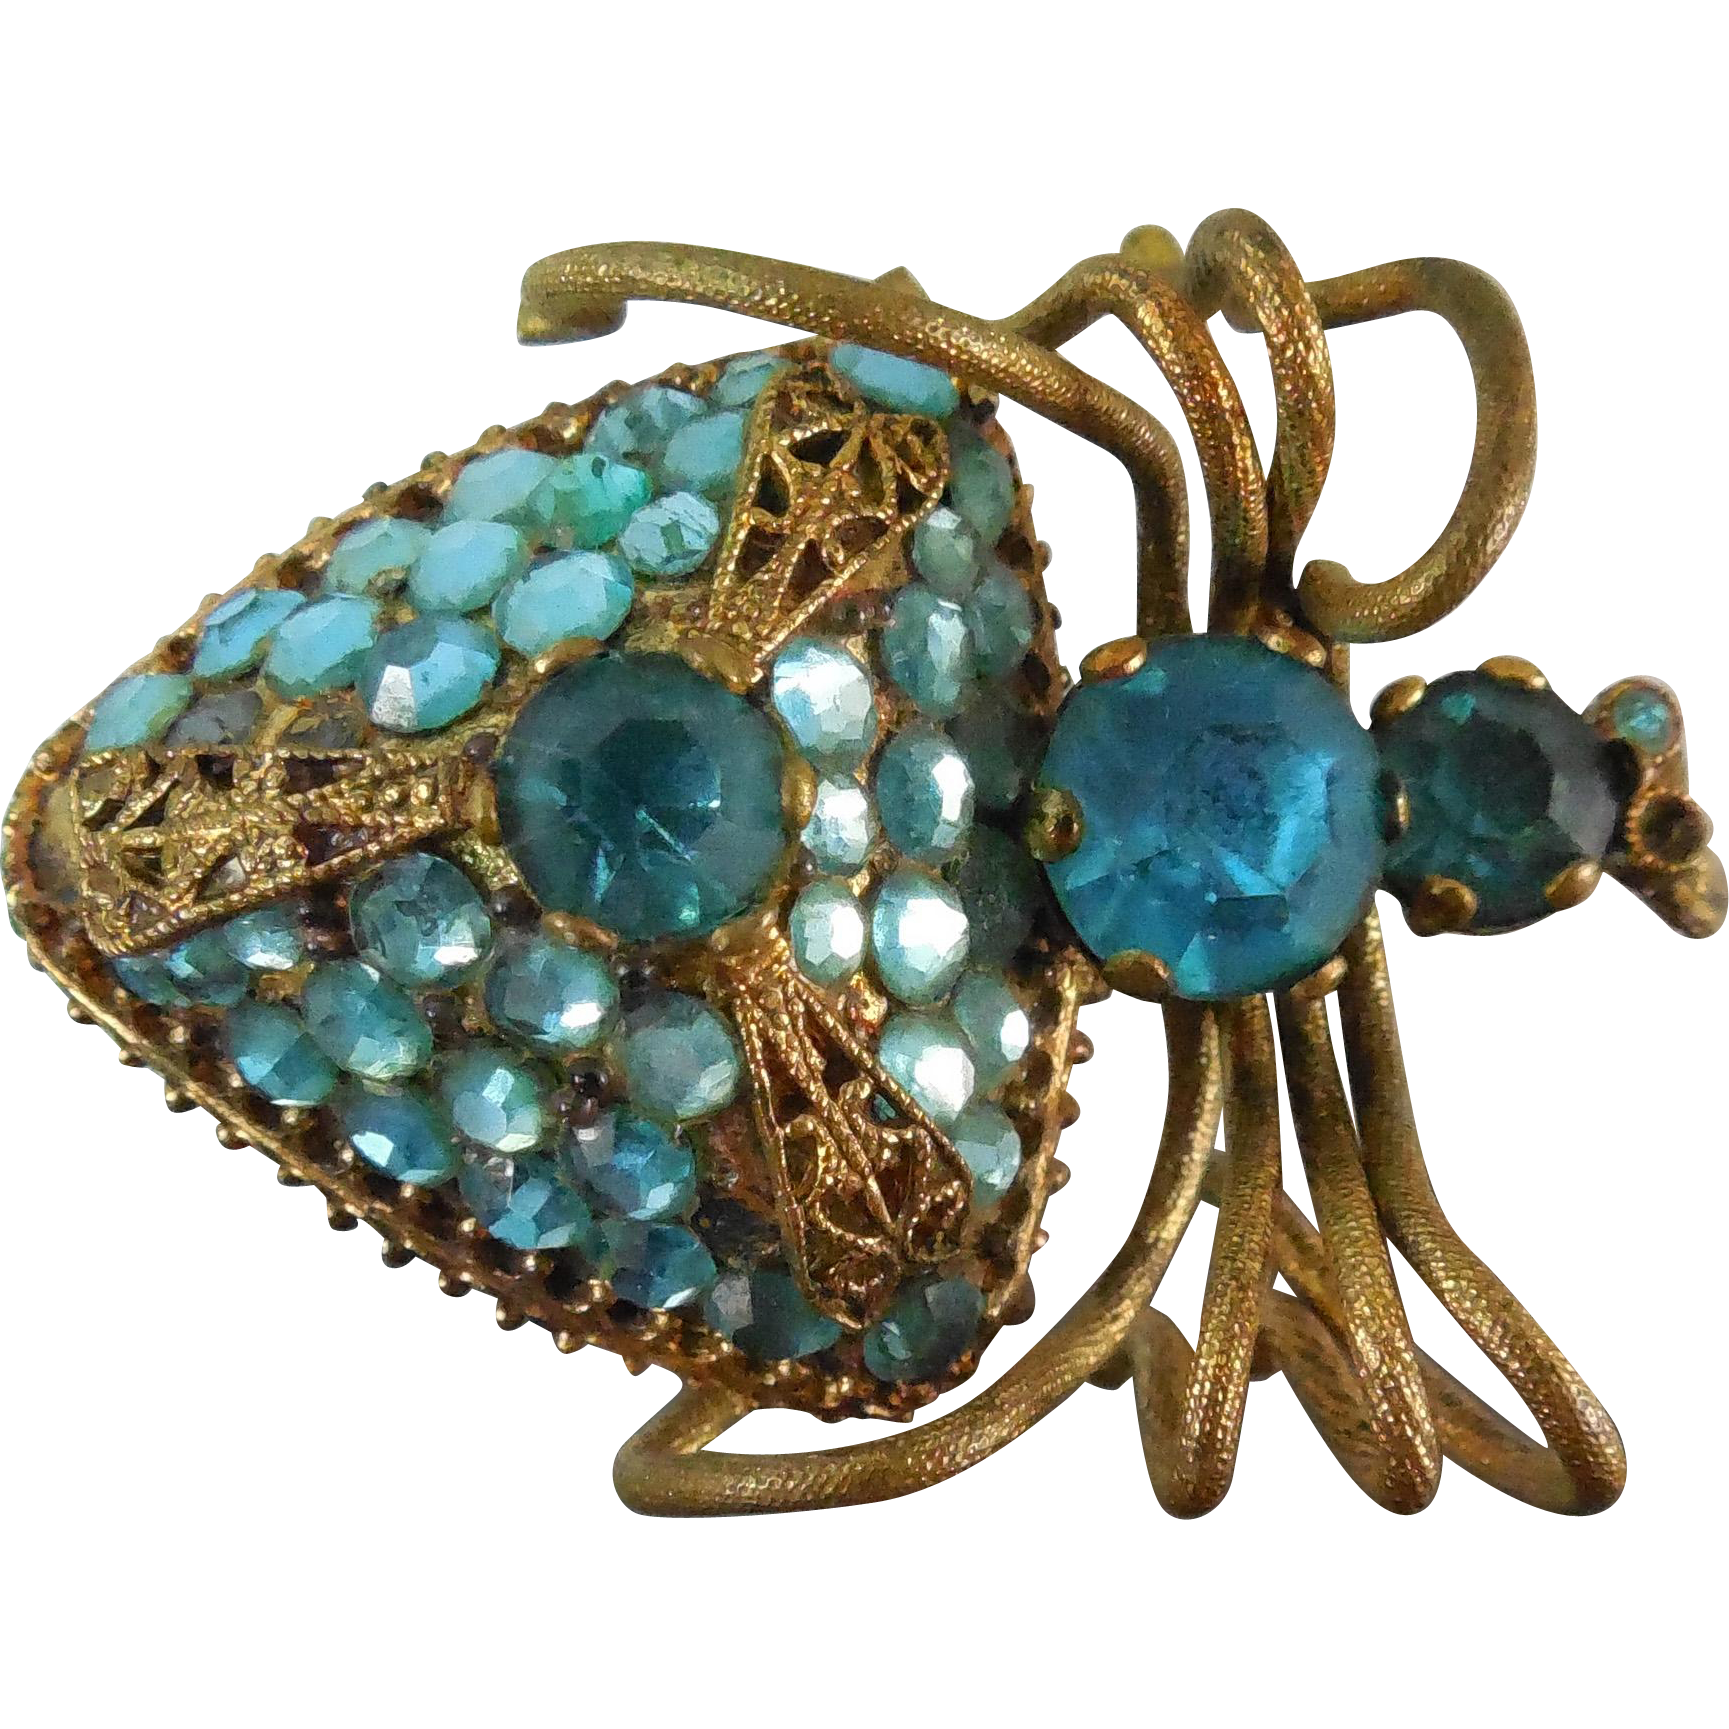 Vintage Czech Figural Insect Spider Brooch Gilt With Blue Rhinestones Circa 1920